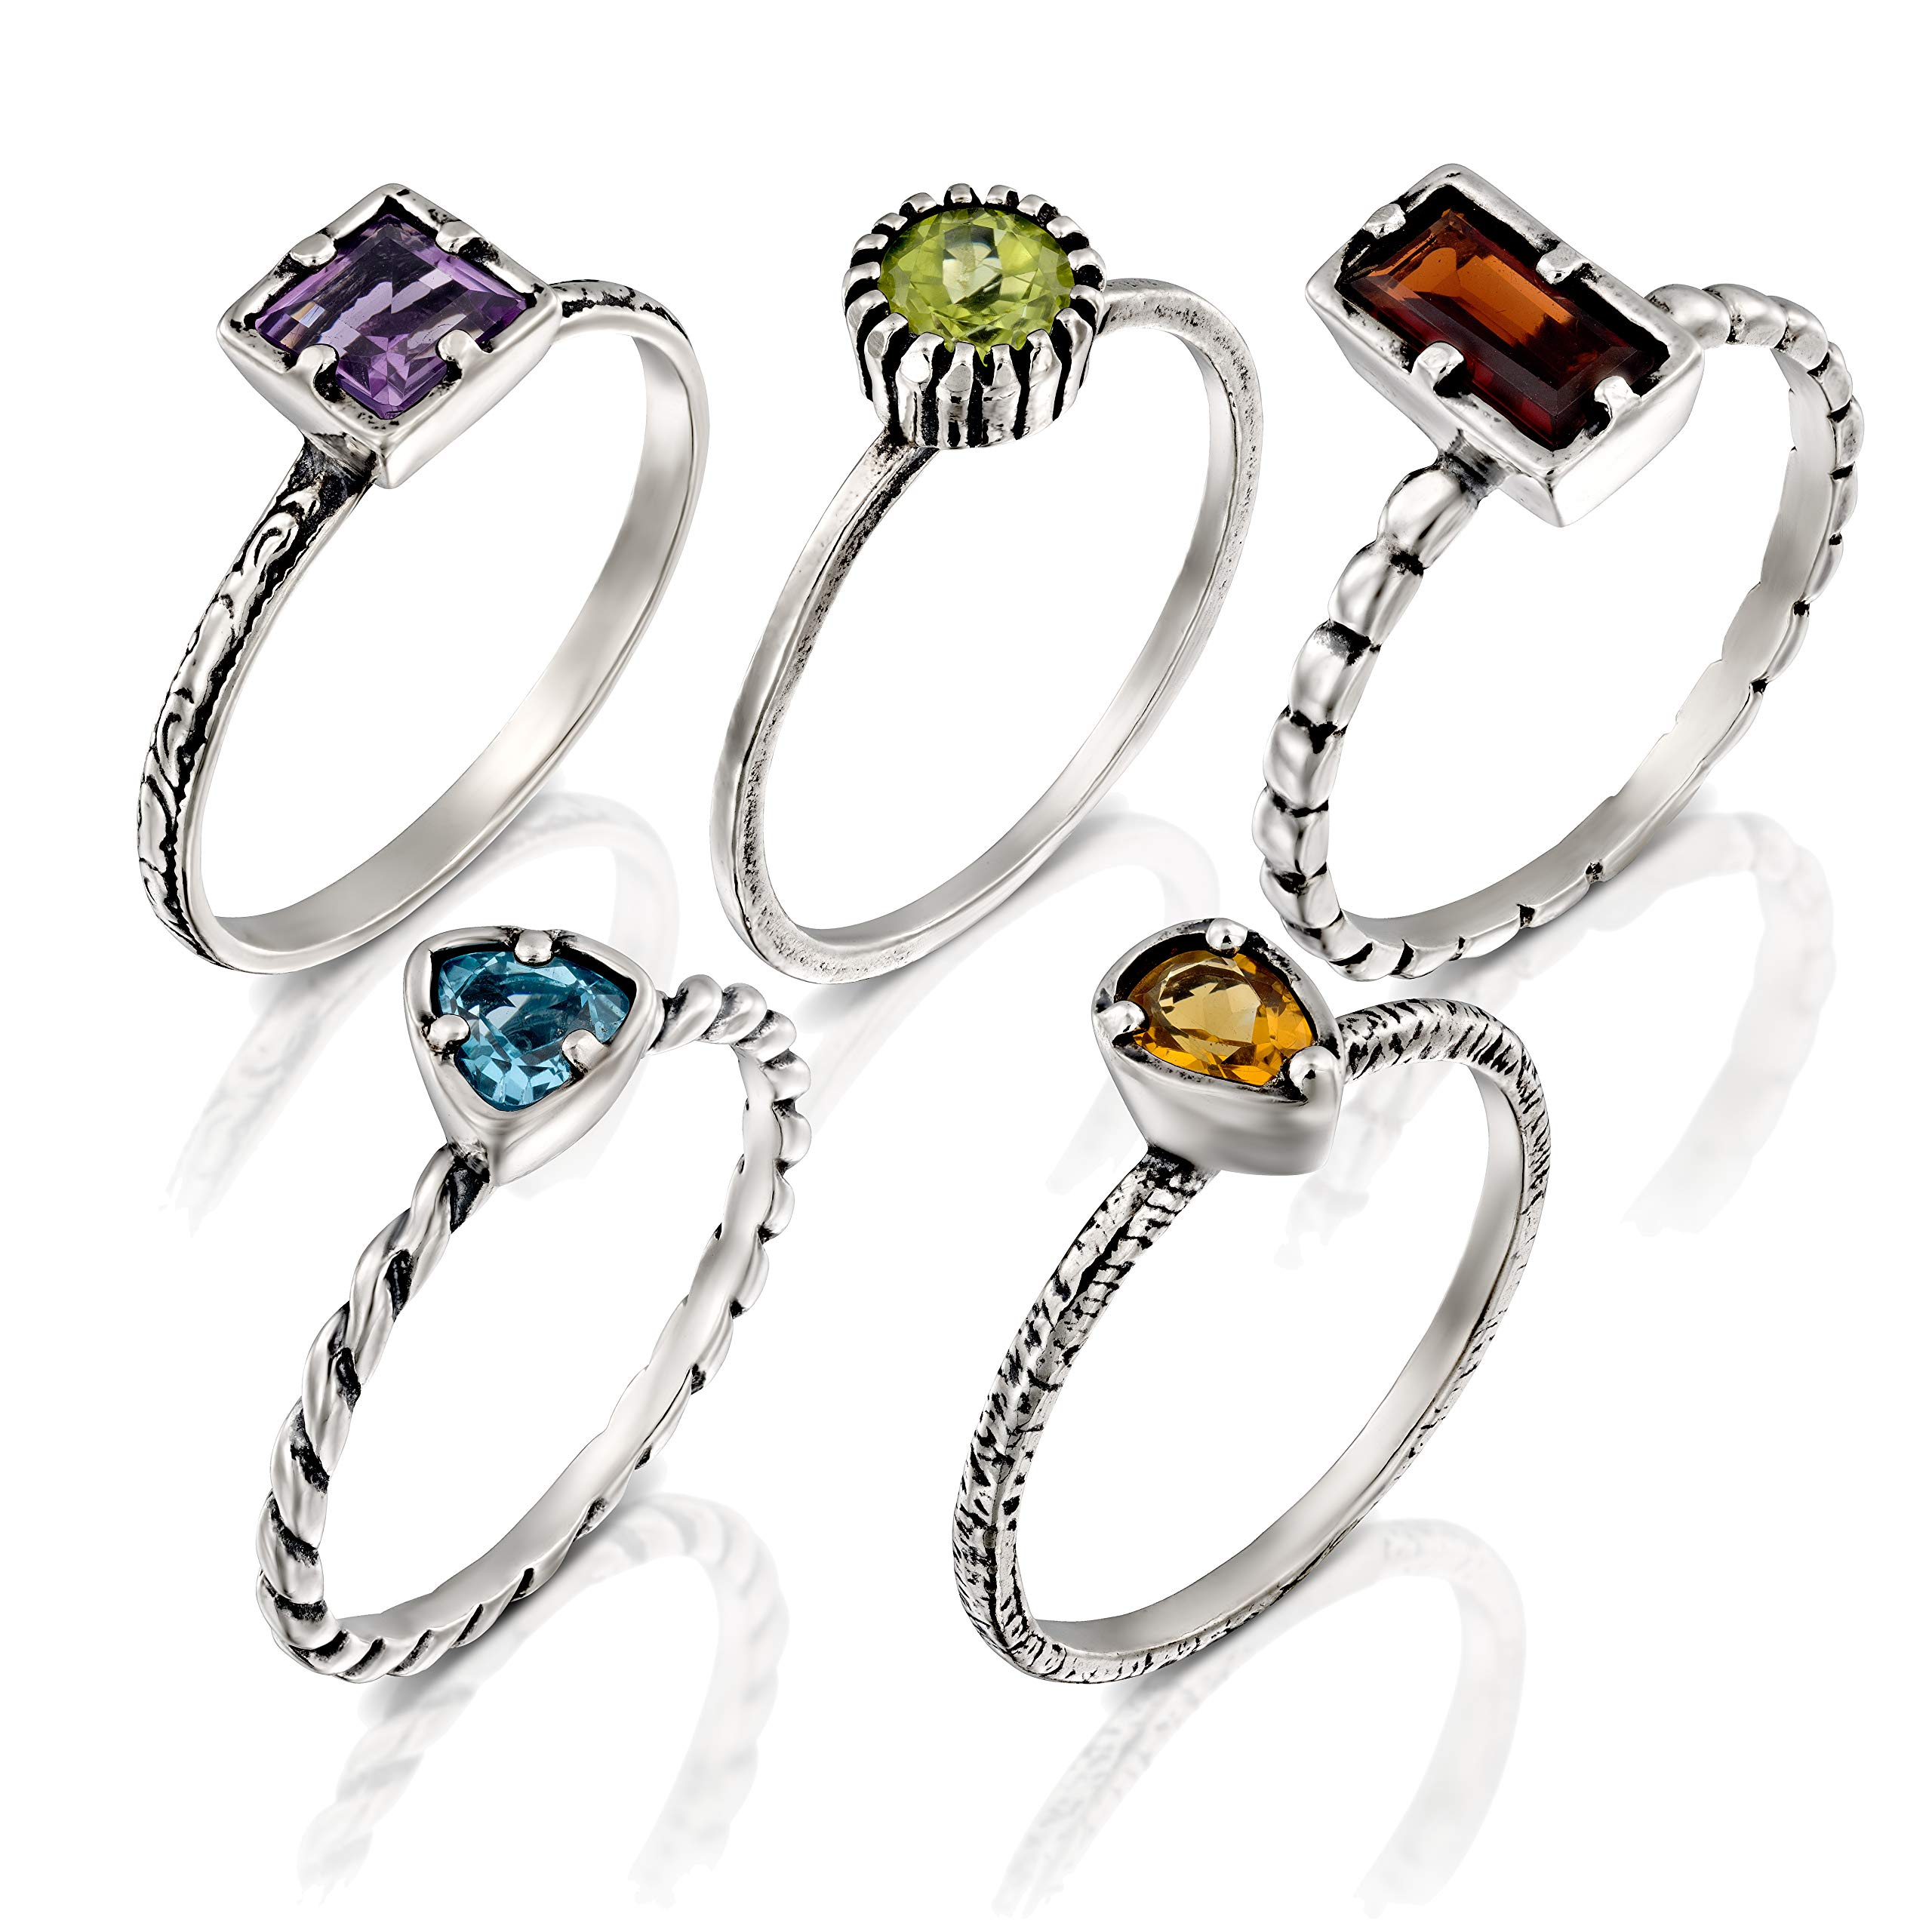 PAZ Creations .925 Sterling Silver Multi Gemstone Stacking Ring Set (7)